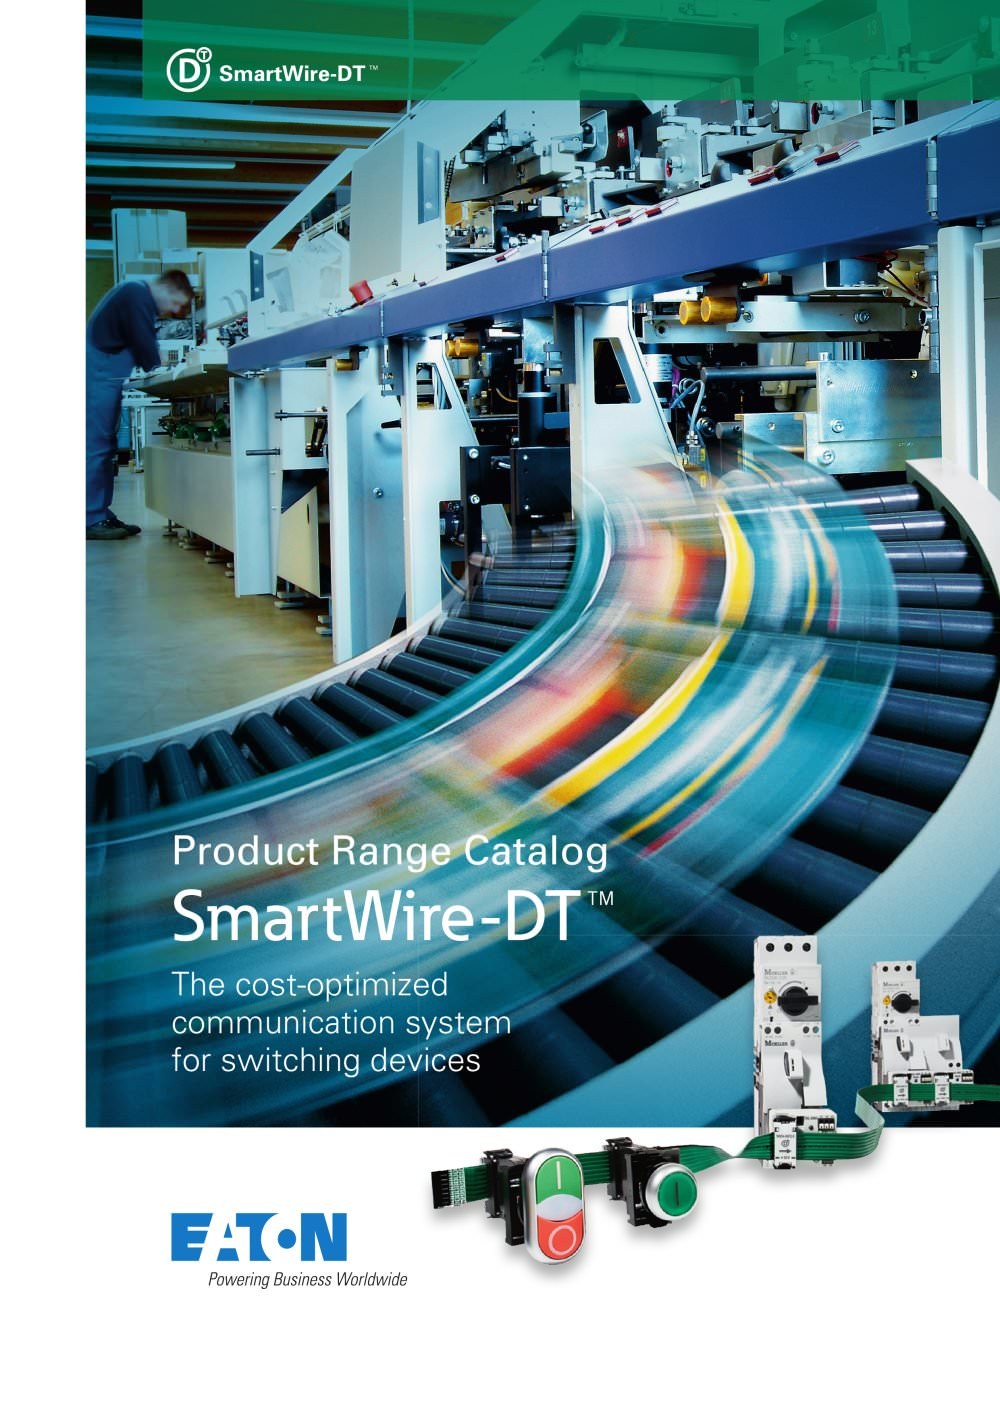 Product Range Catalog SmartWire-DT - Eaton - PDF Catalogue ...